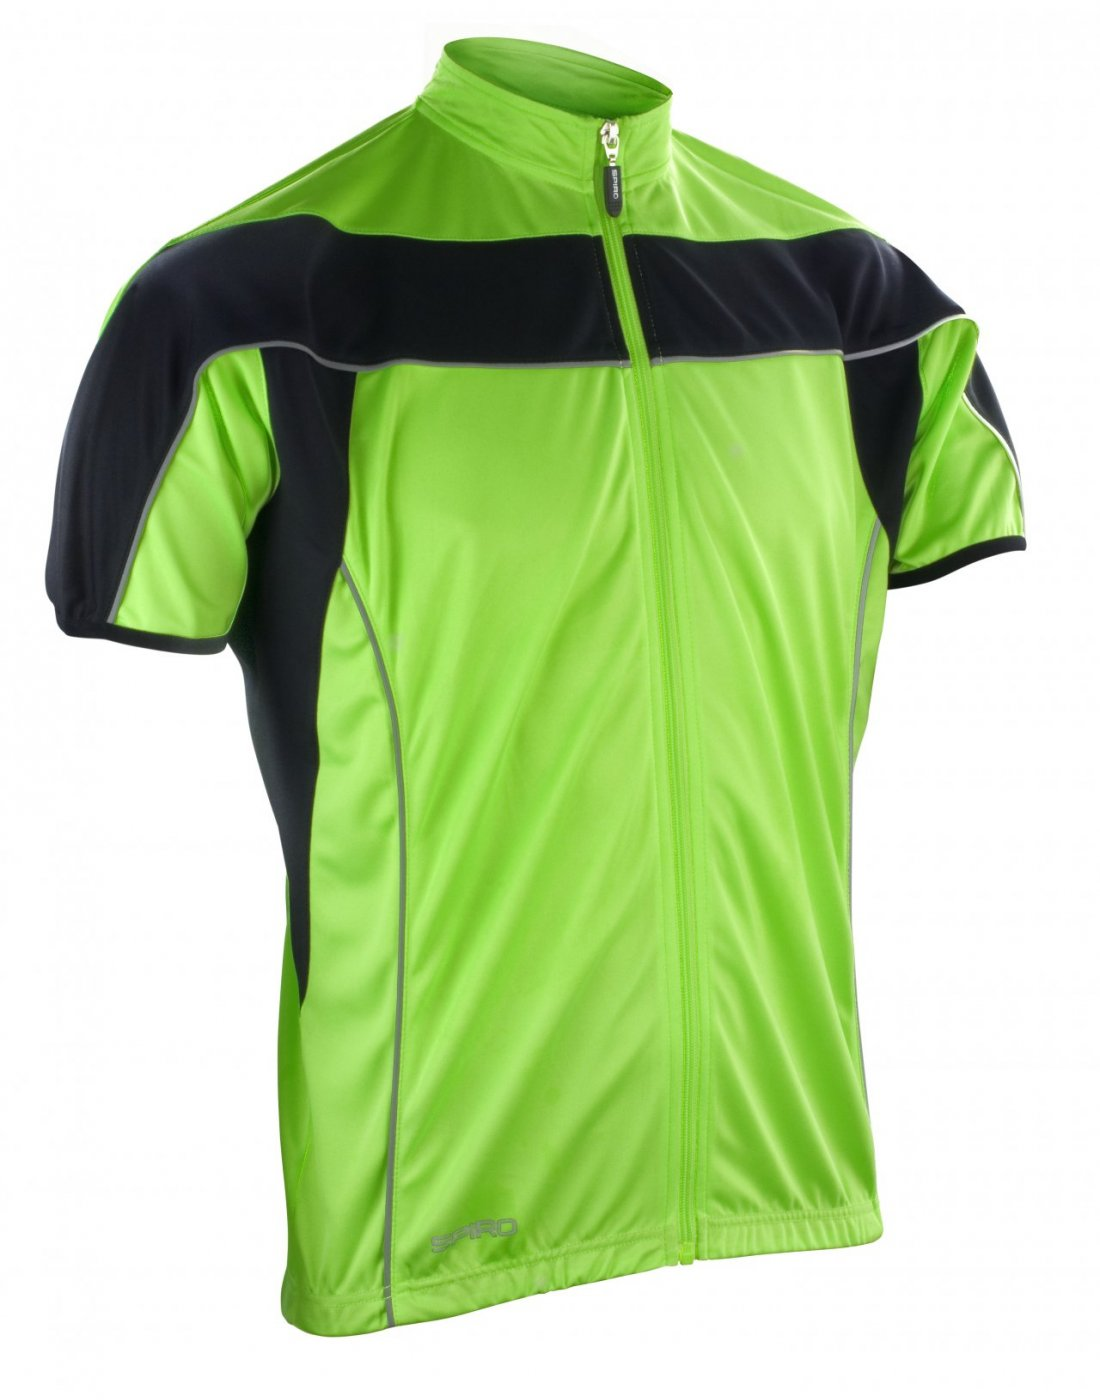 Spiro S188M Men's Bikewear Full Zip Performance Top